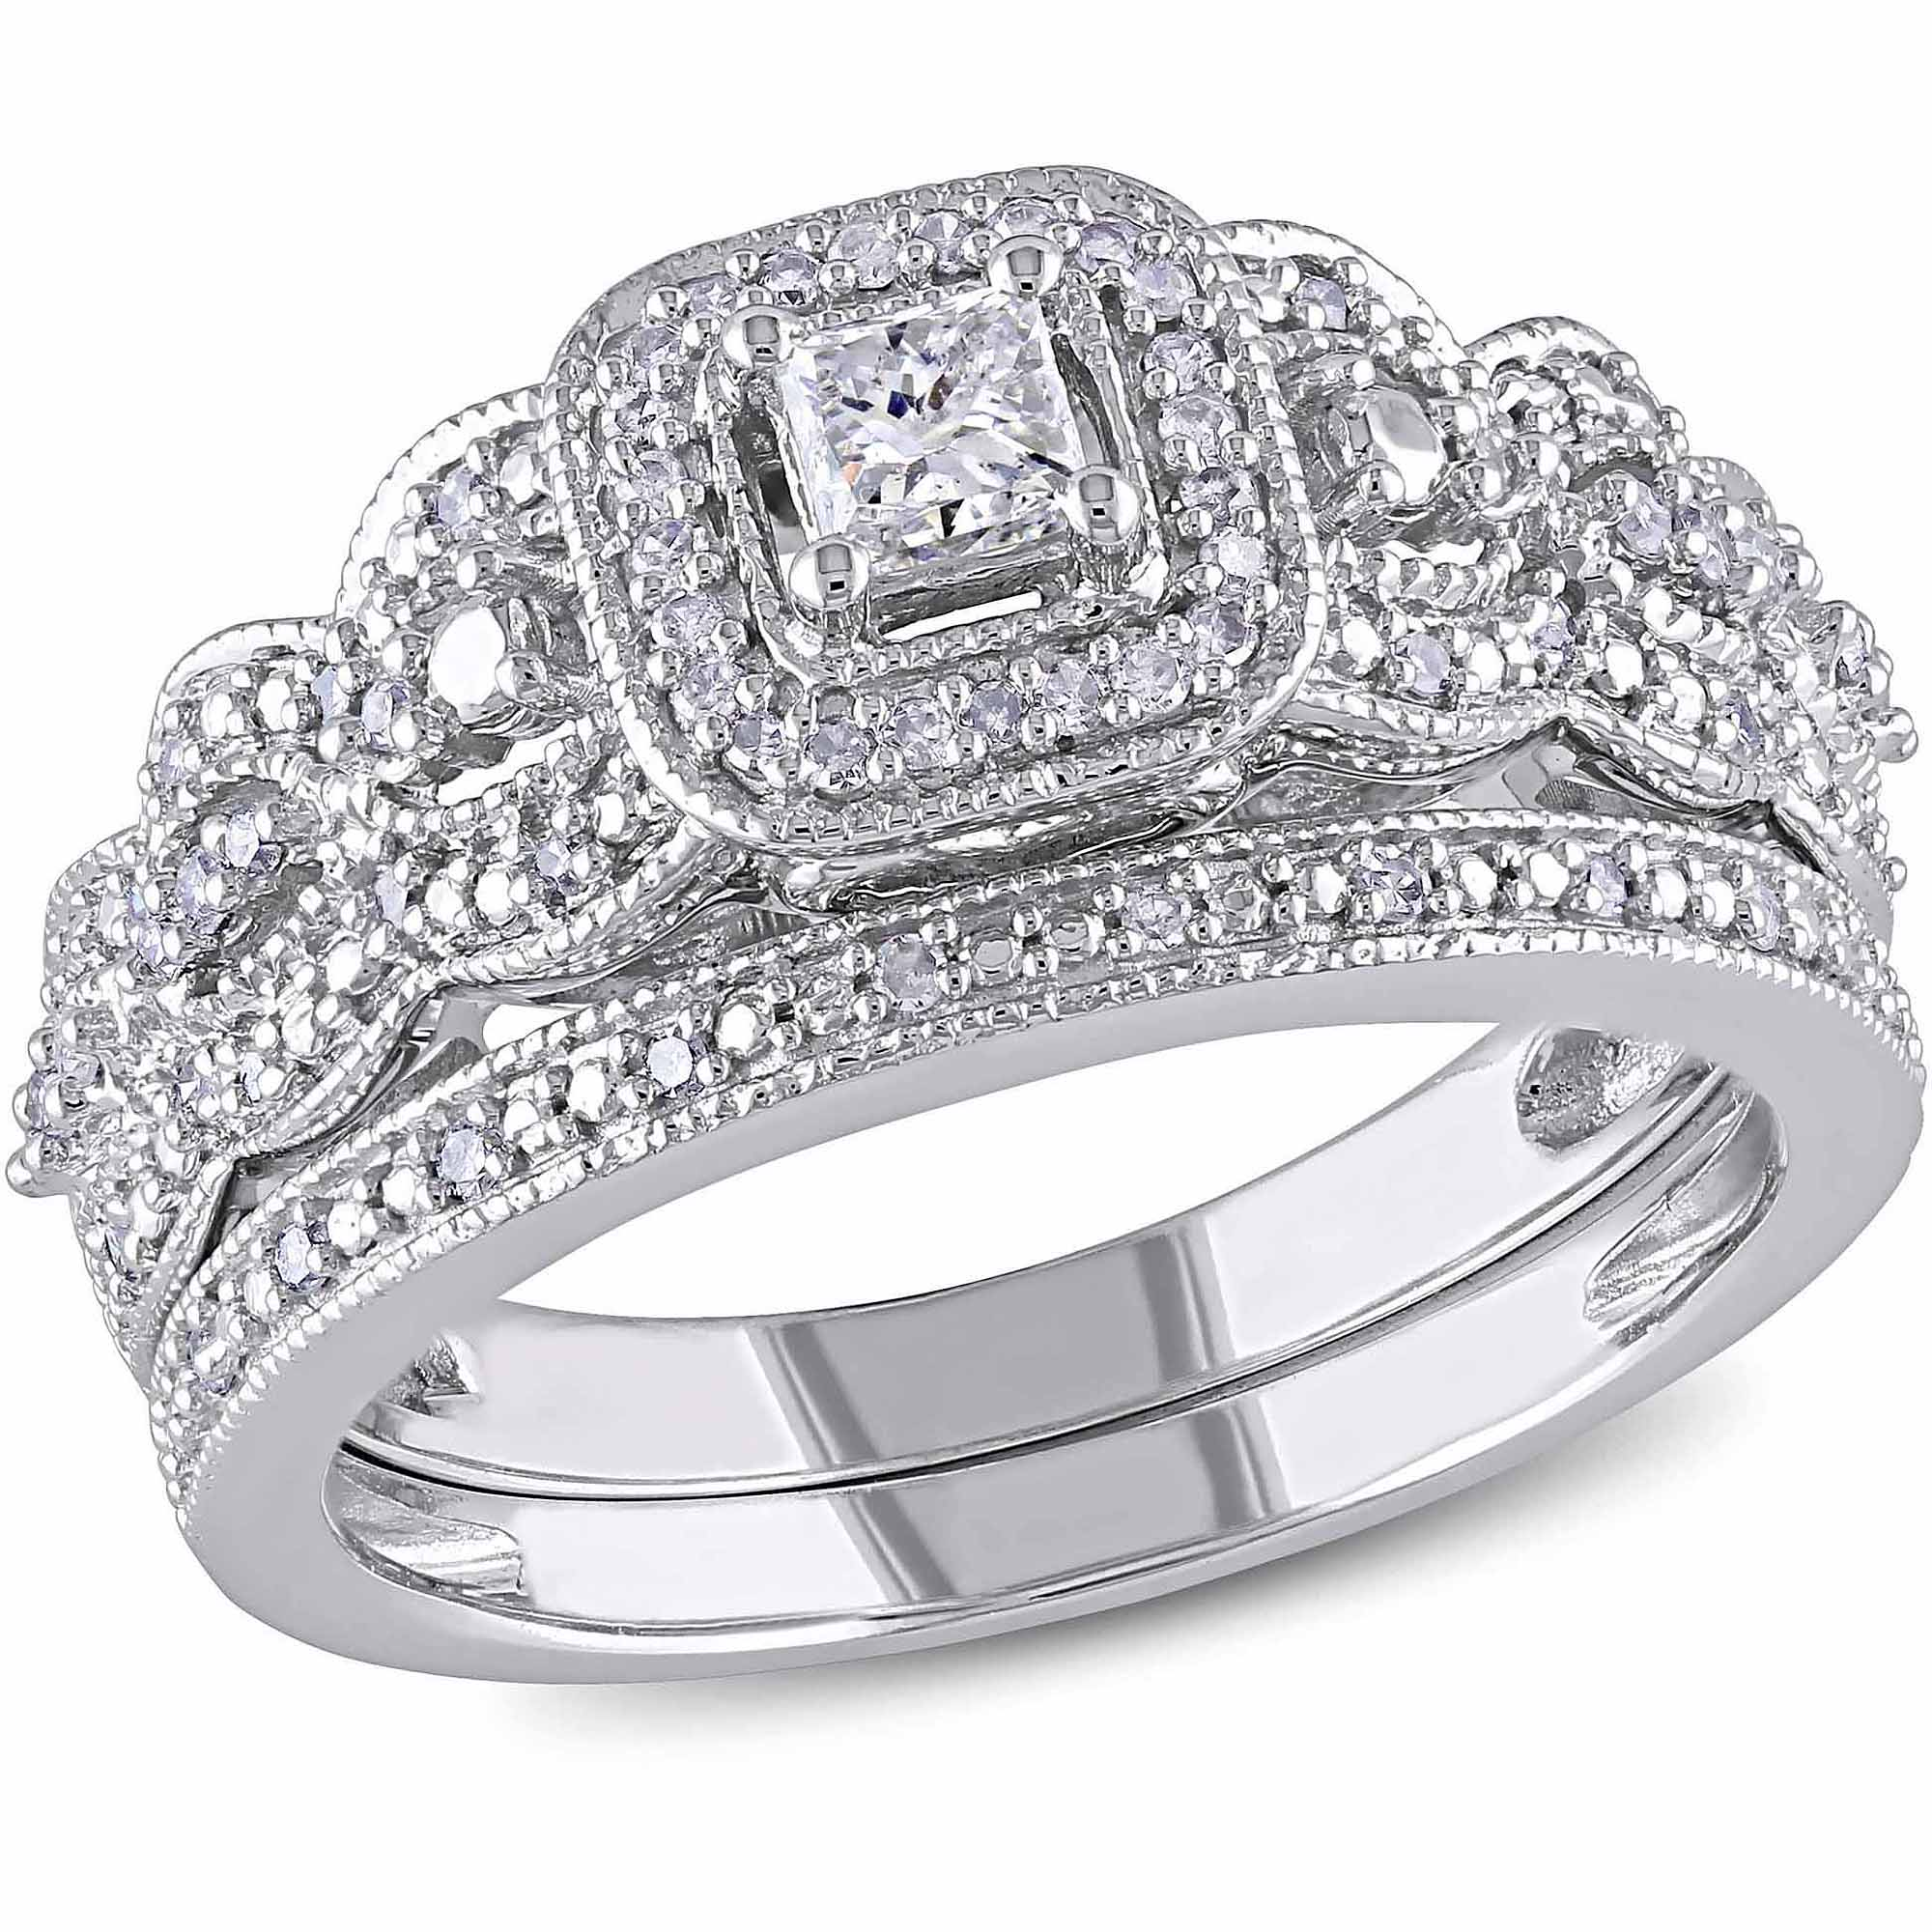 Miabella 1 2 Carat T.W. Princess and Round-Cut Diamond 14kt White Gold Bridal Set by Generic